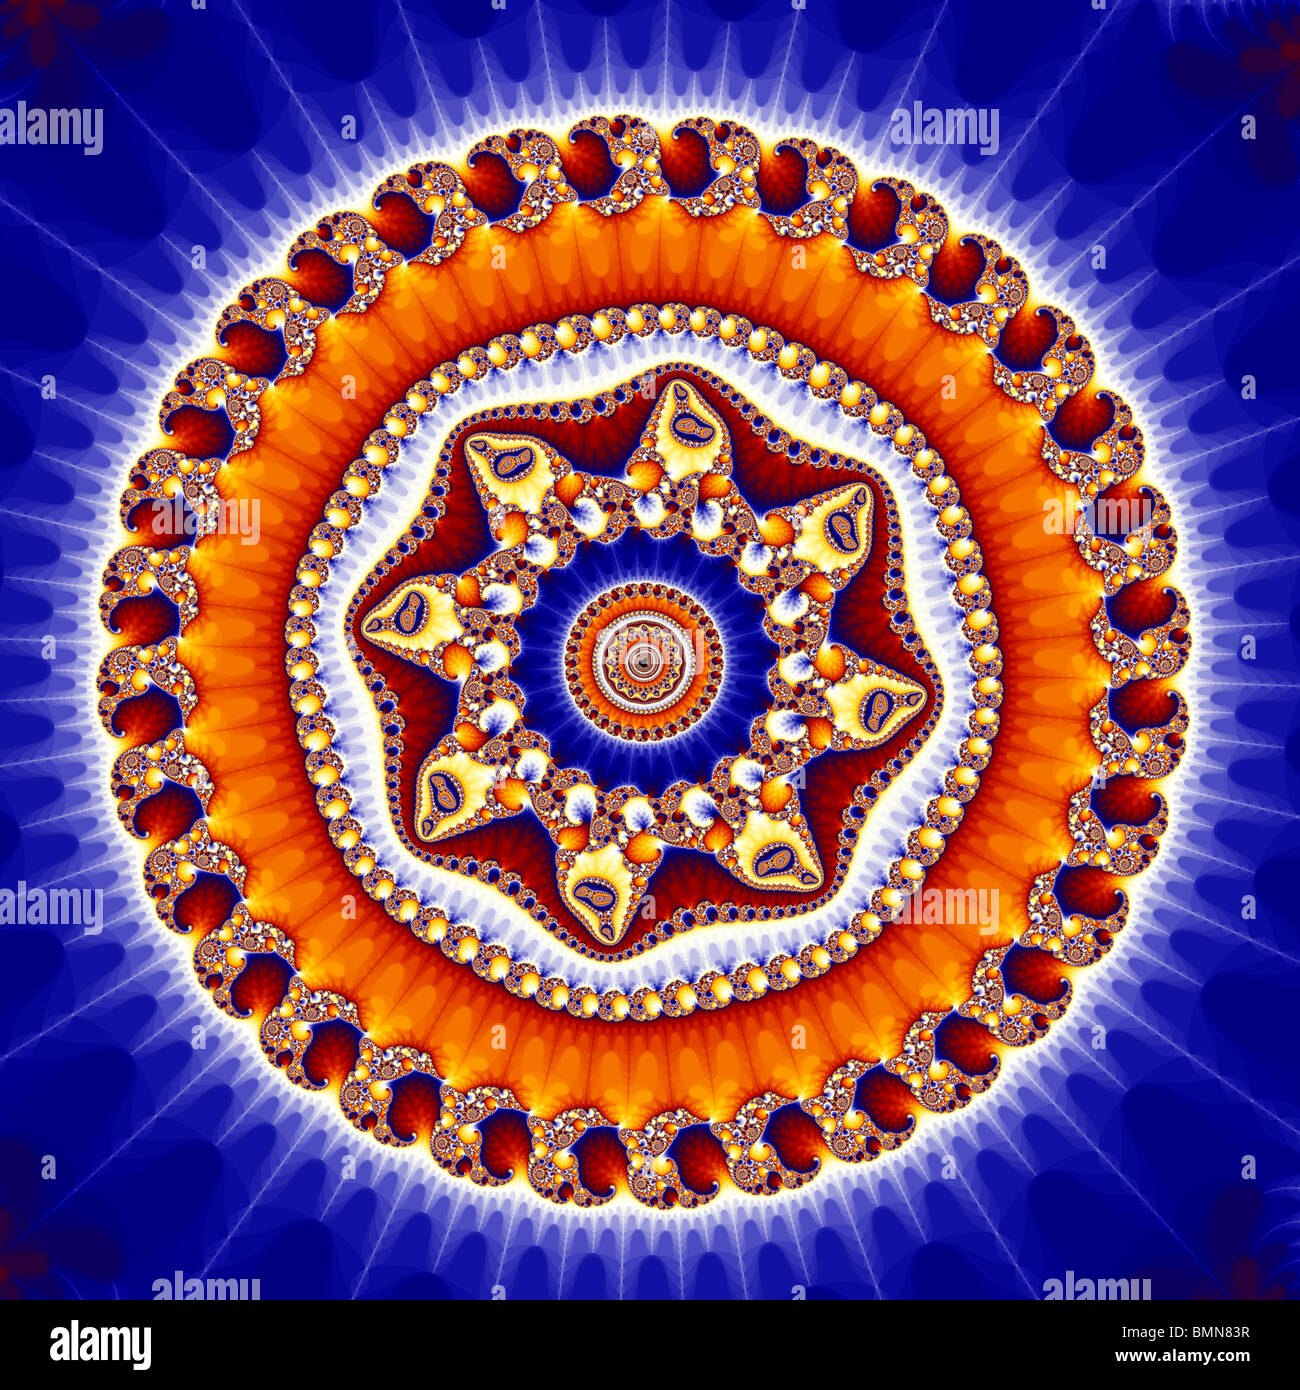 The Mandelbrot Set contains an infinite number of smaller copies of itself, surrounded by complex patterns. - Stock Image